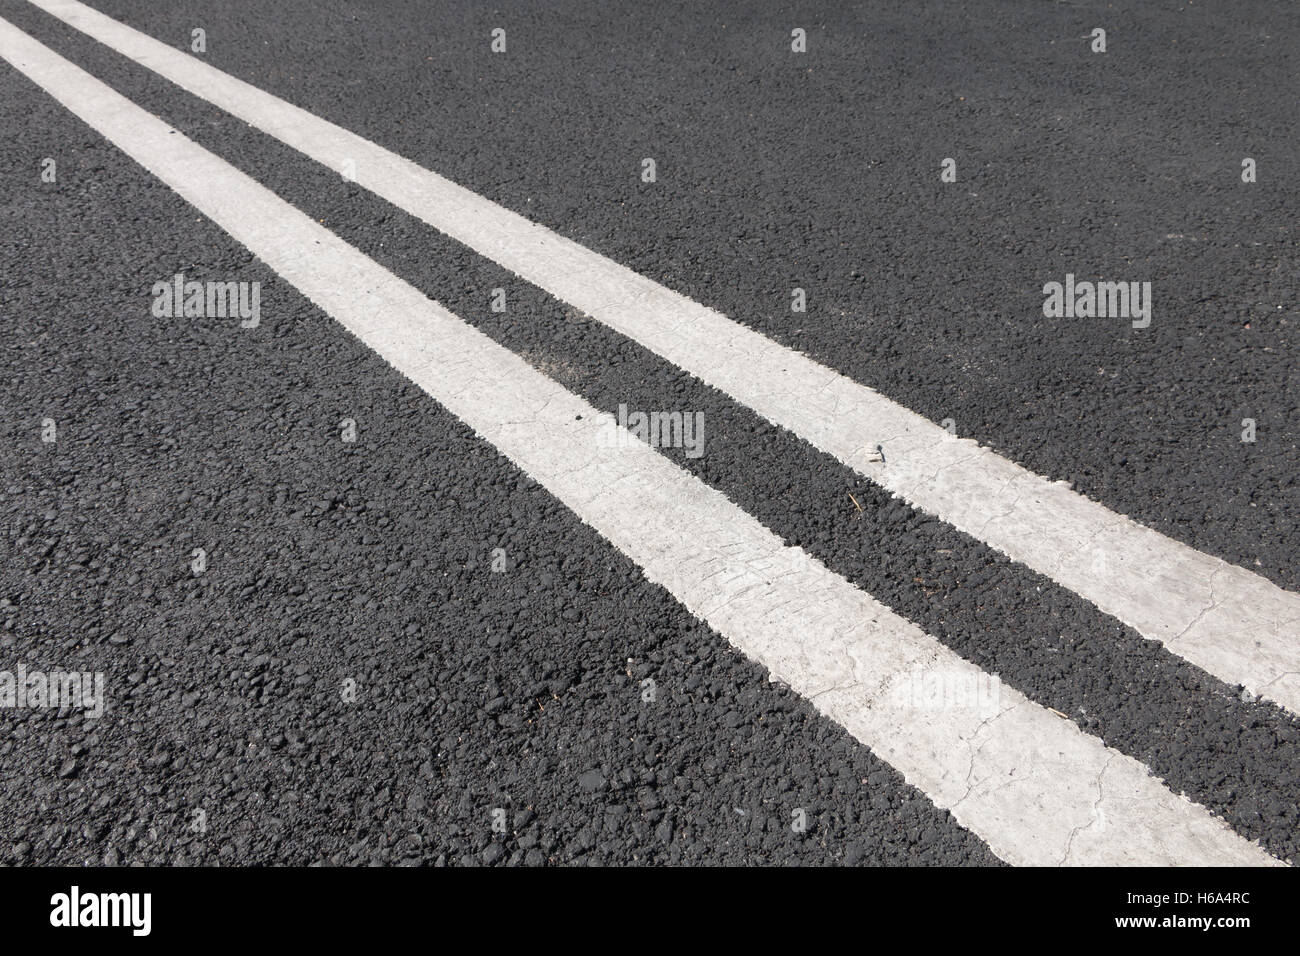 double white line diagonally across the black road - Stock Image